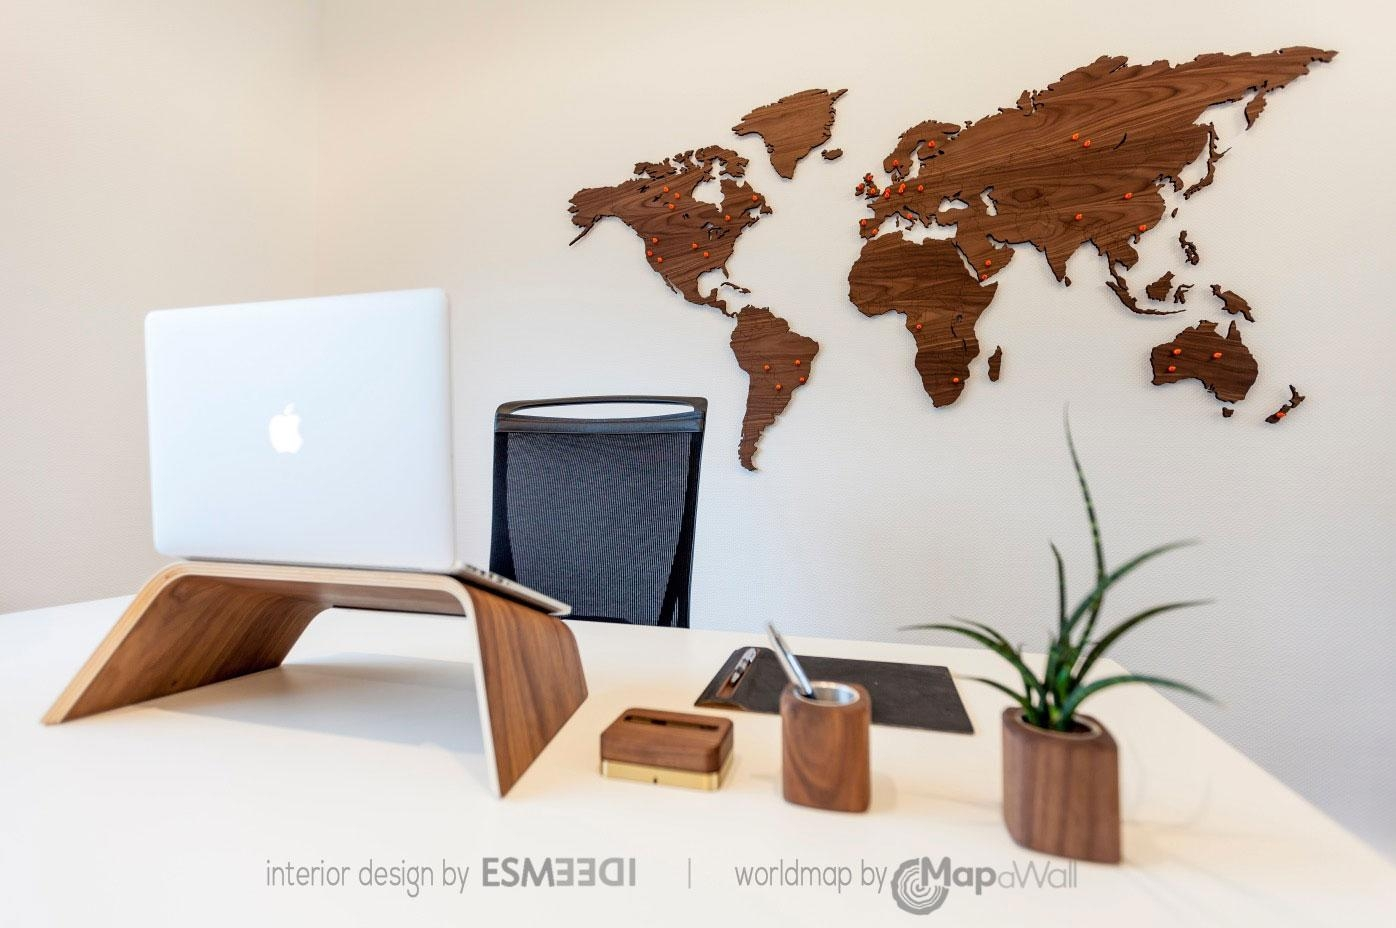 World Map Walnut As Office Decoration | Woodenworldmap Within World Map Wood Wall Art (Image 17 of 20)